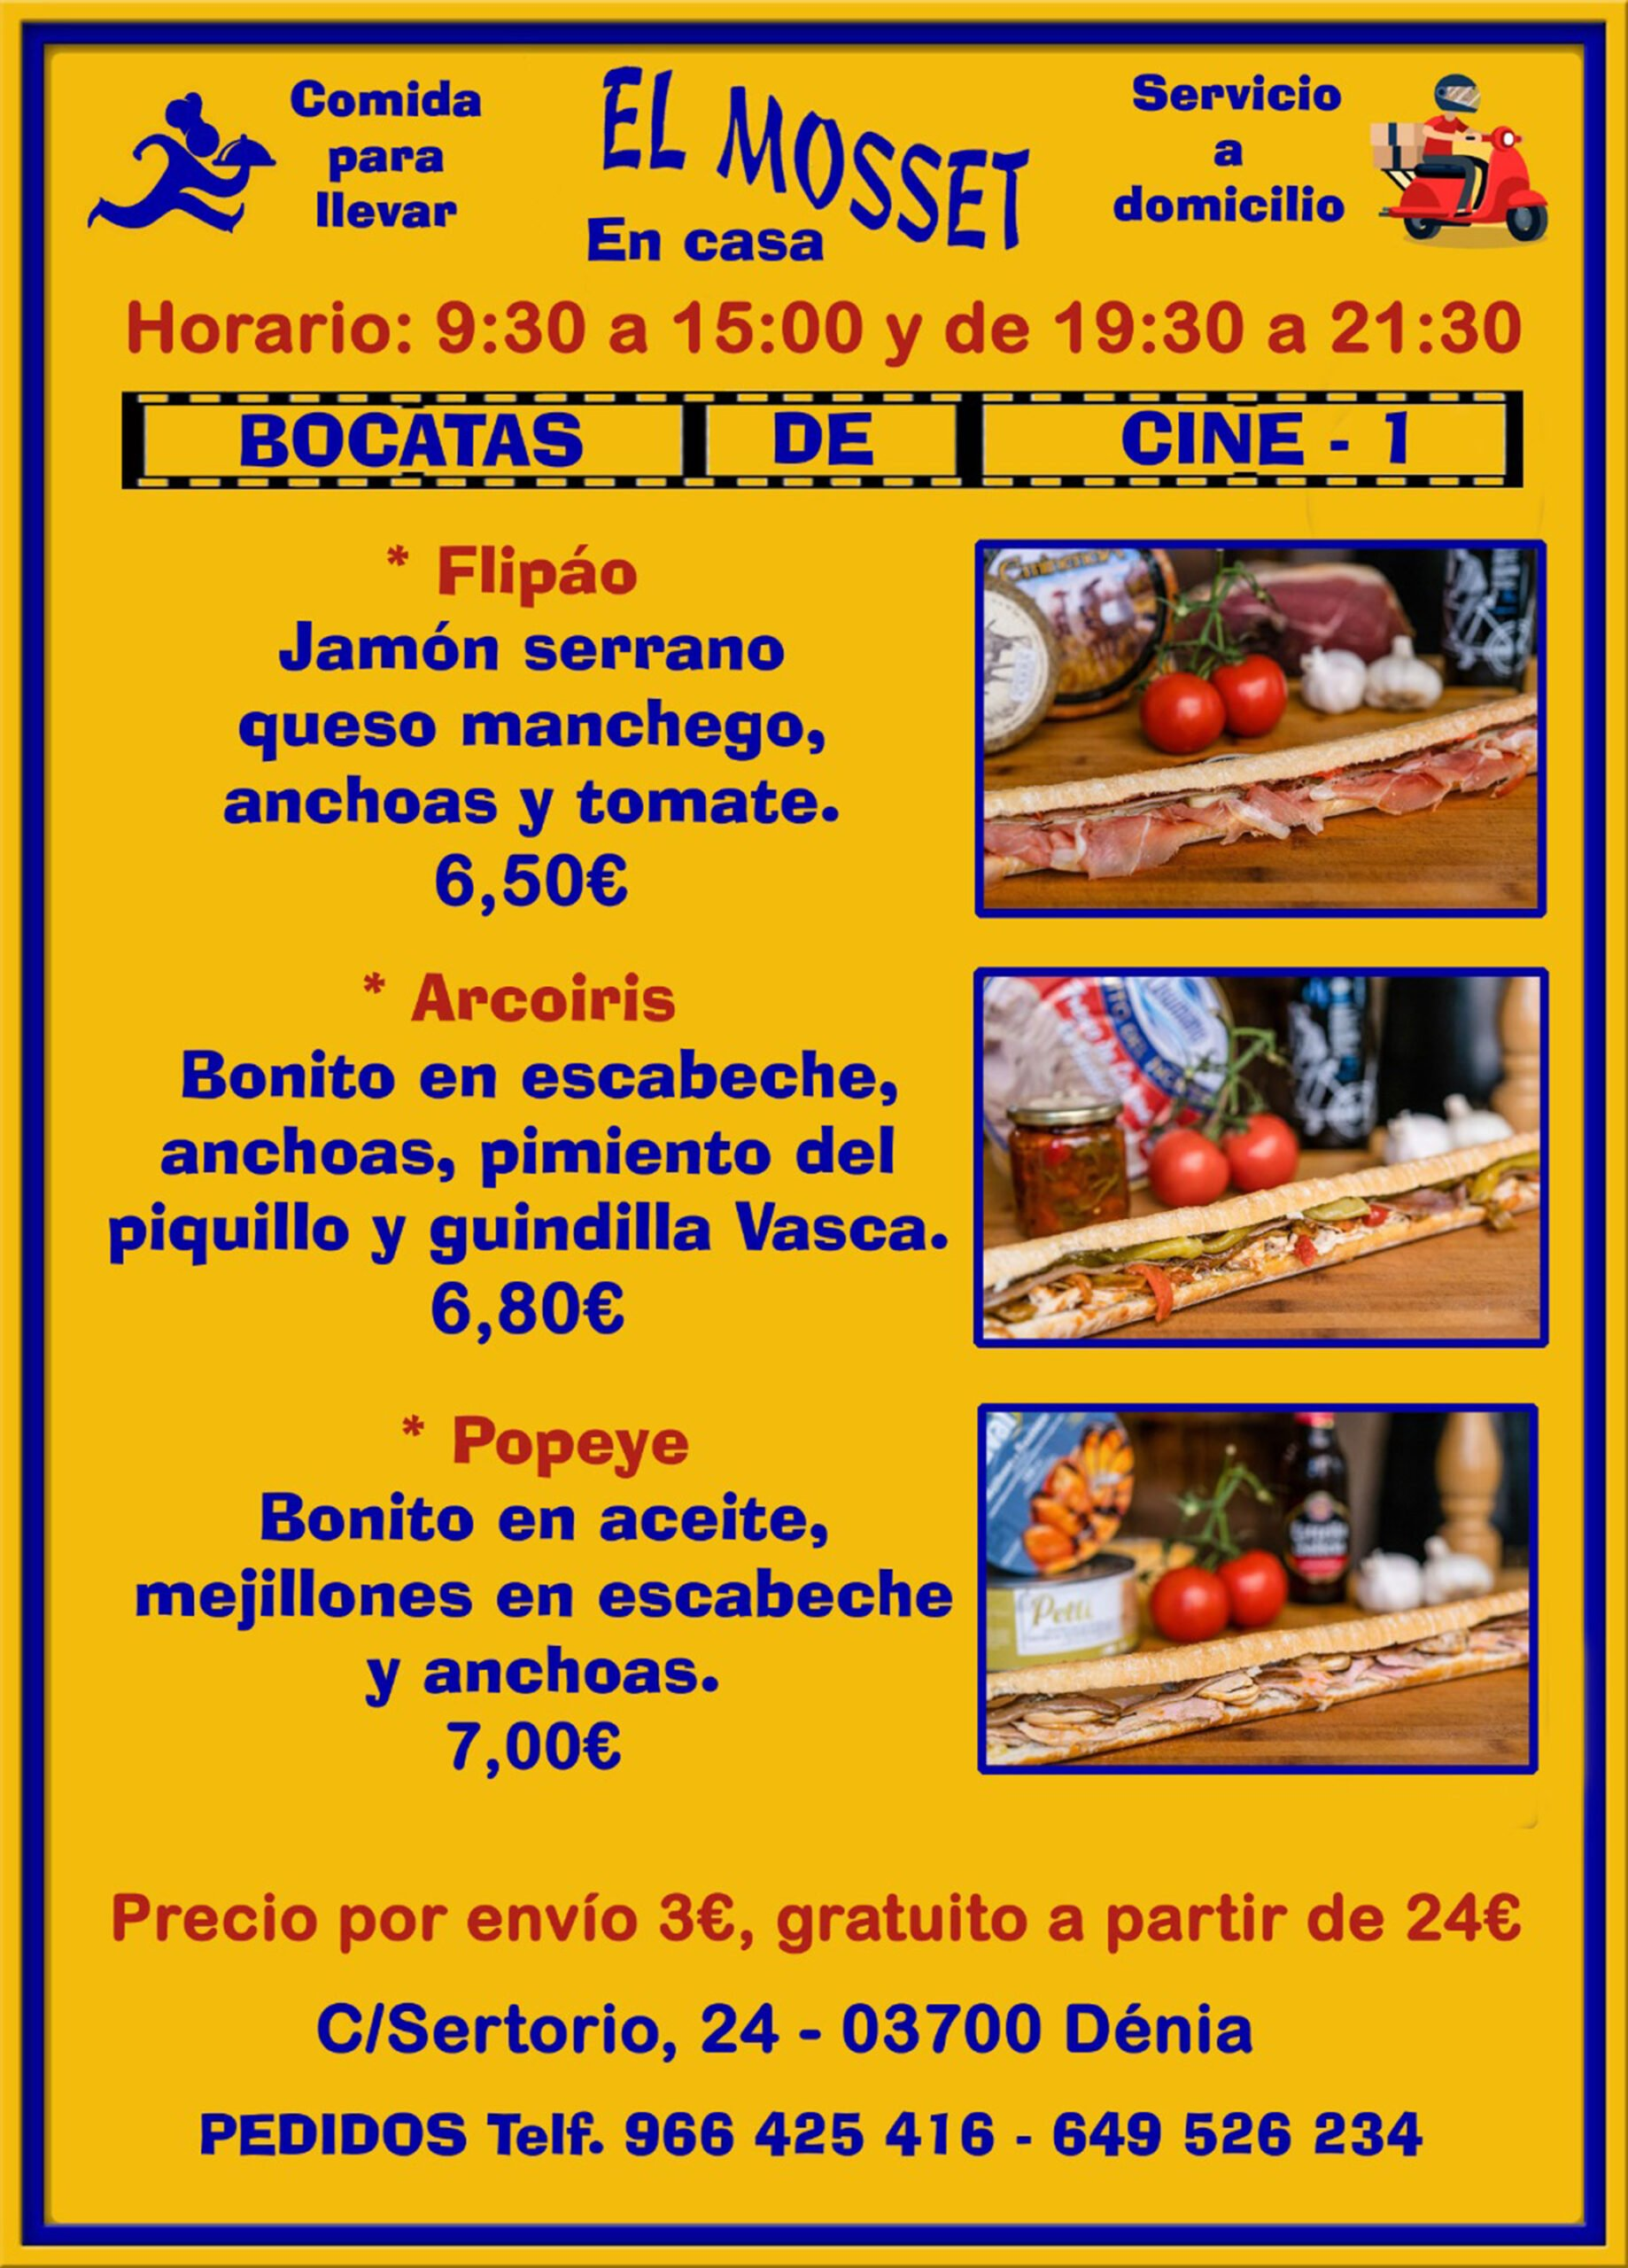 Sandwiches to take away and at home in Dénia (Cinema Sandwiches 1) - El Mosset